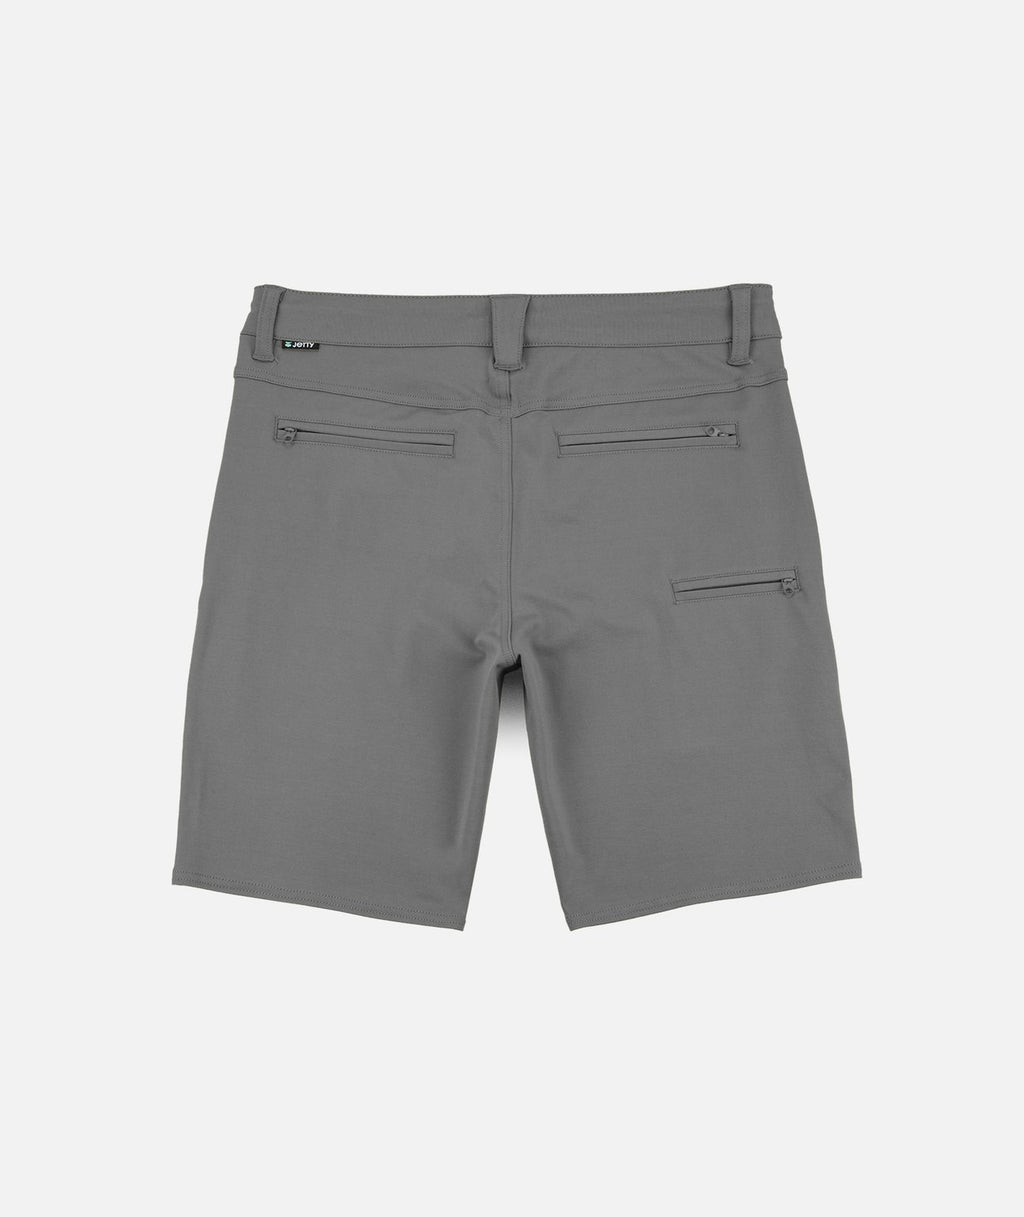 JETTY TRAVERSE UTILITY SHORT